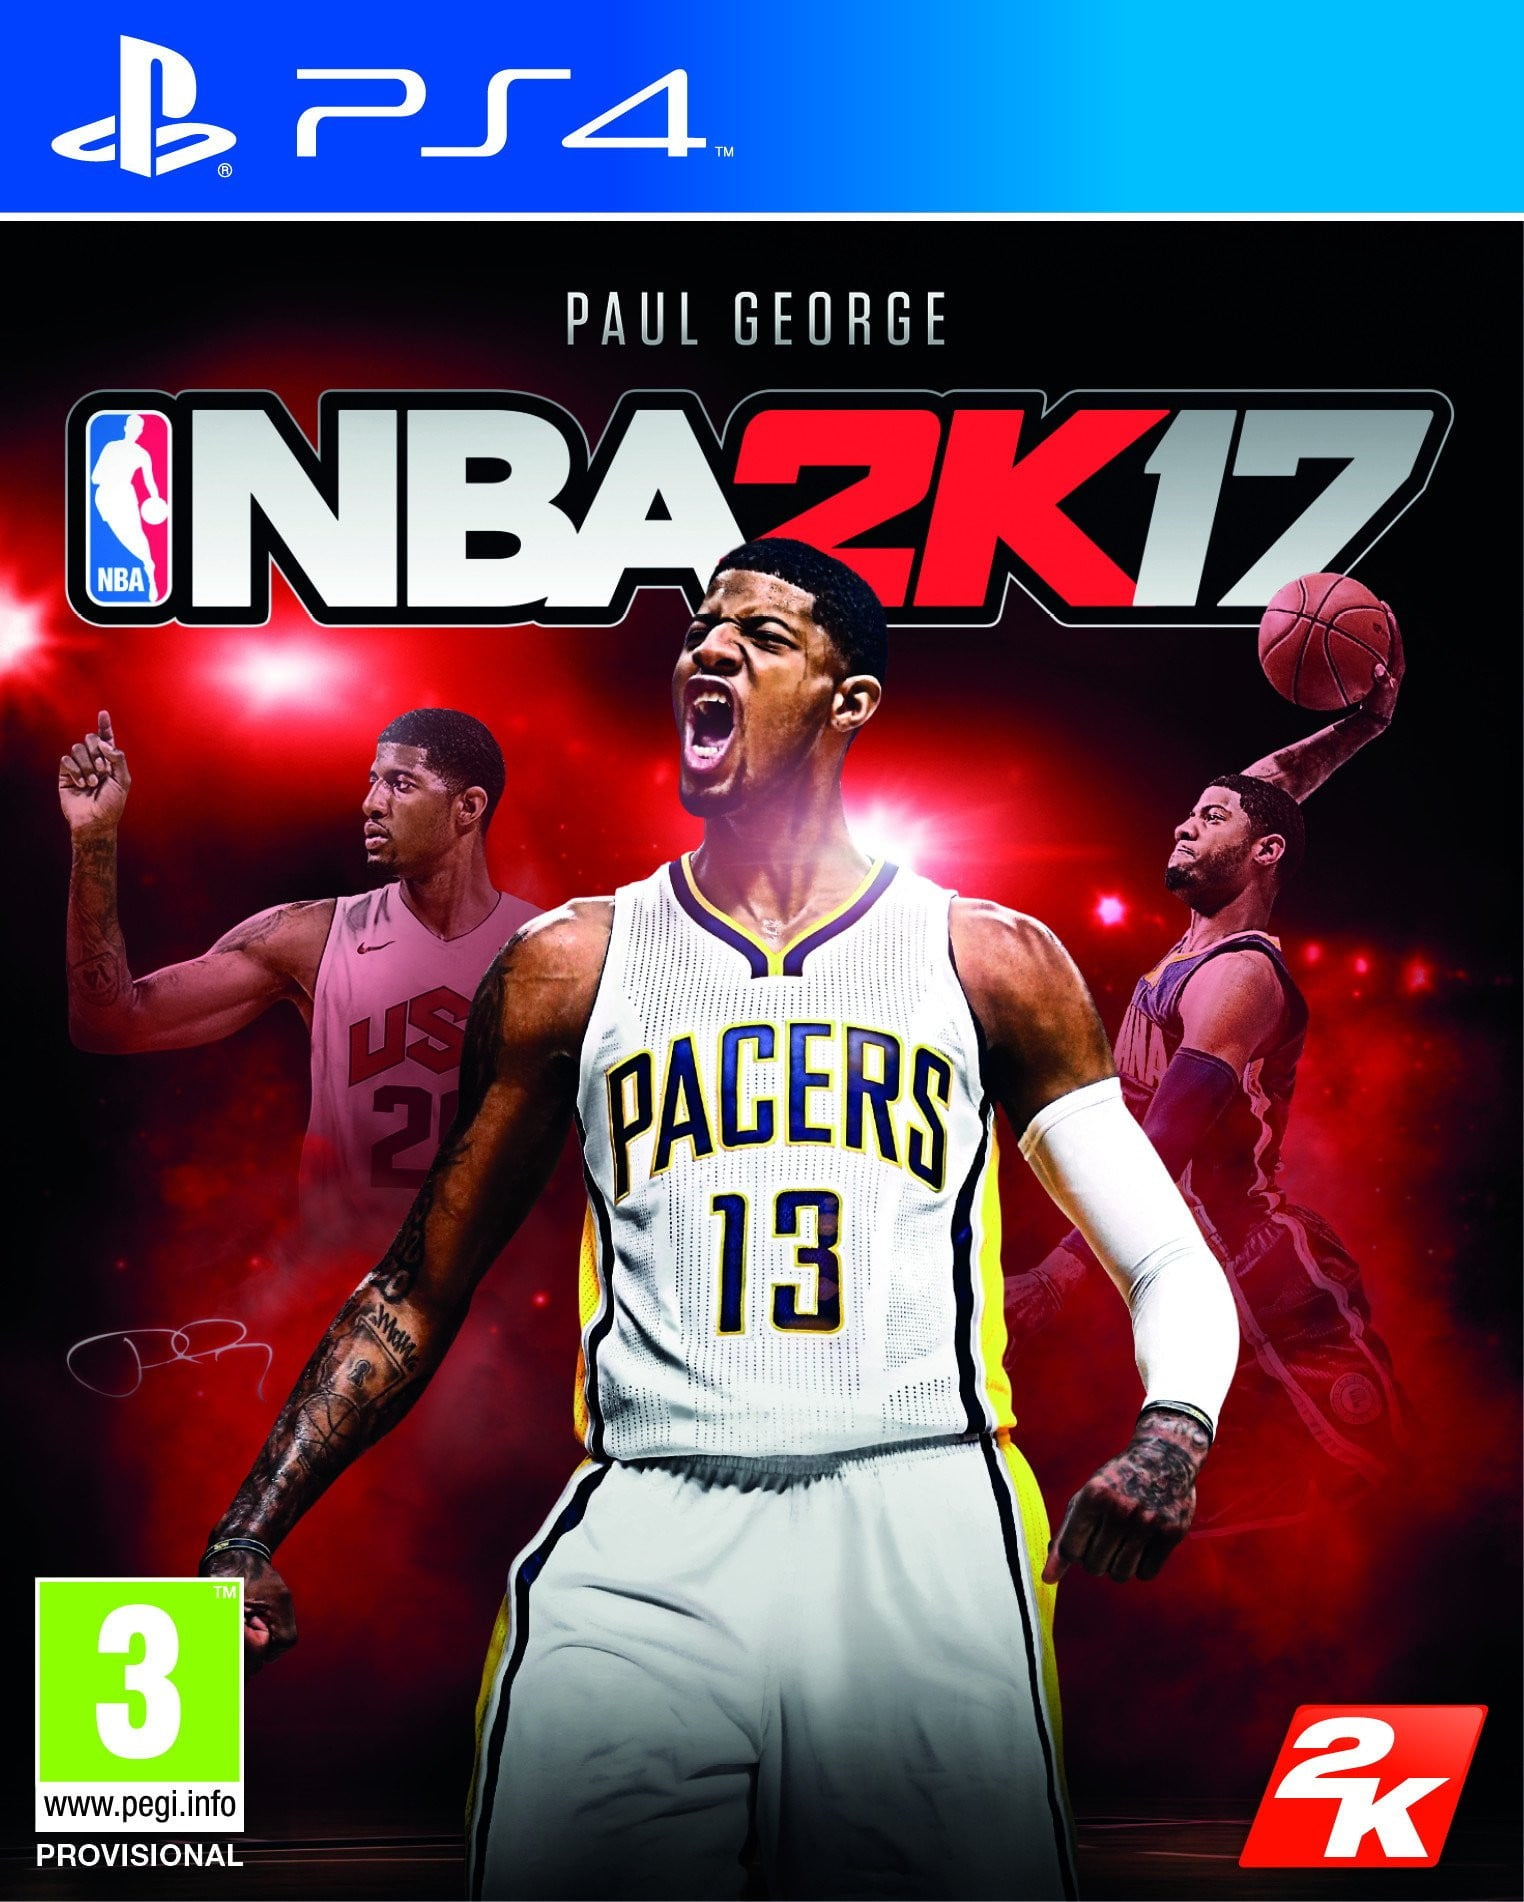 Buy NBA 2K17 (PS4) PS4 Game in Egypt - Shamy Stores